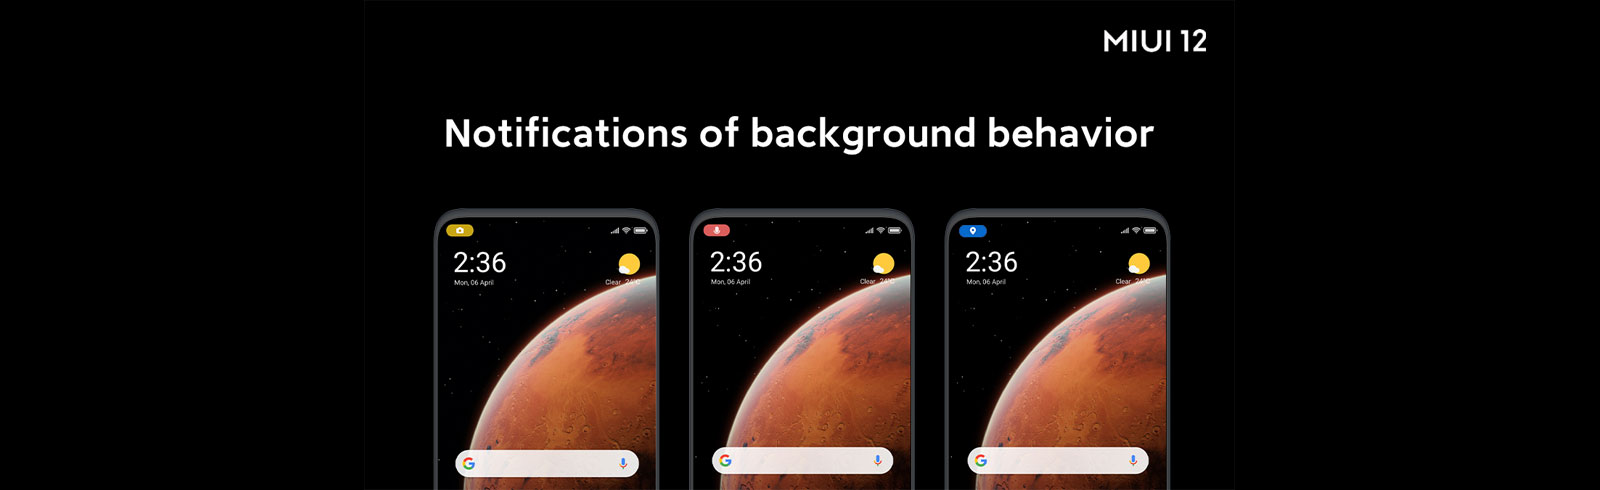 Xiaomi unveiled MIUI 12 - new features and roll out plan